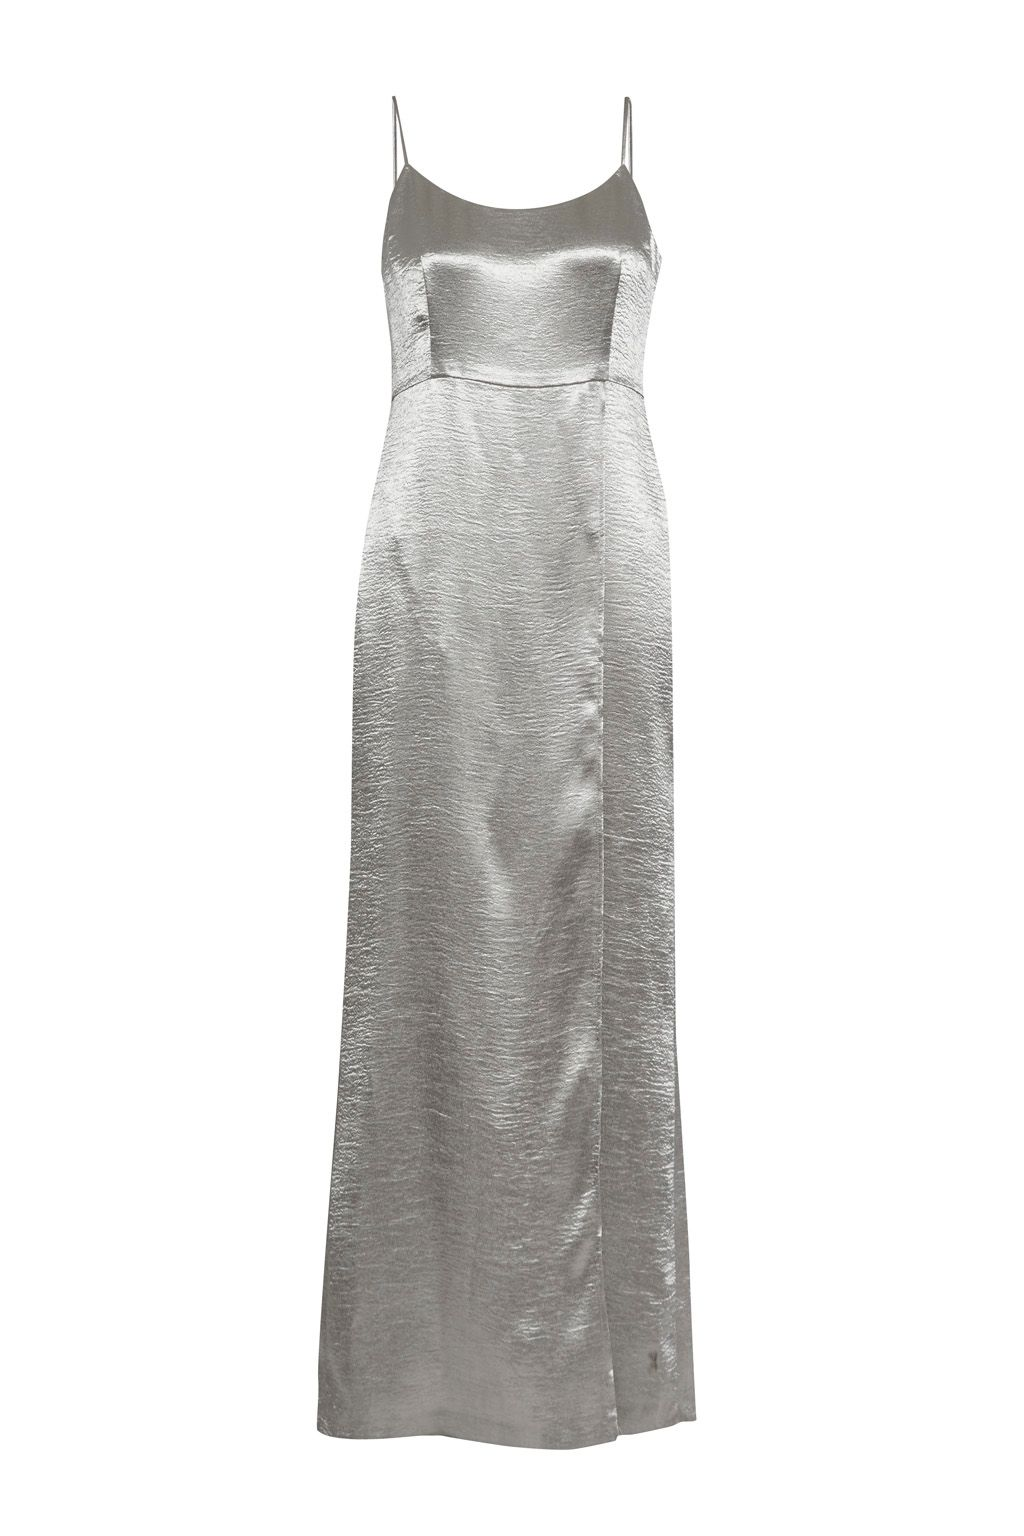 French Connection Kate Shine Strappy Maxi Dress, Grey